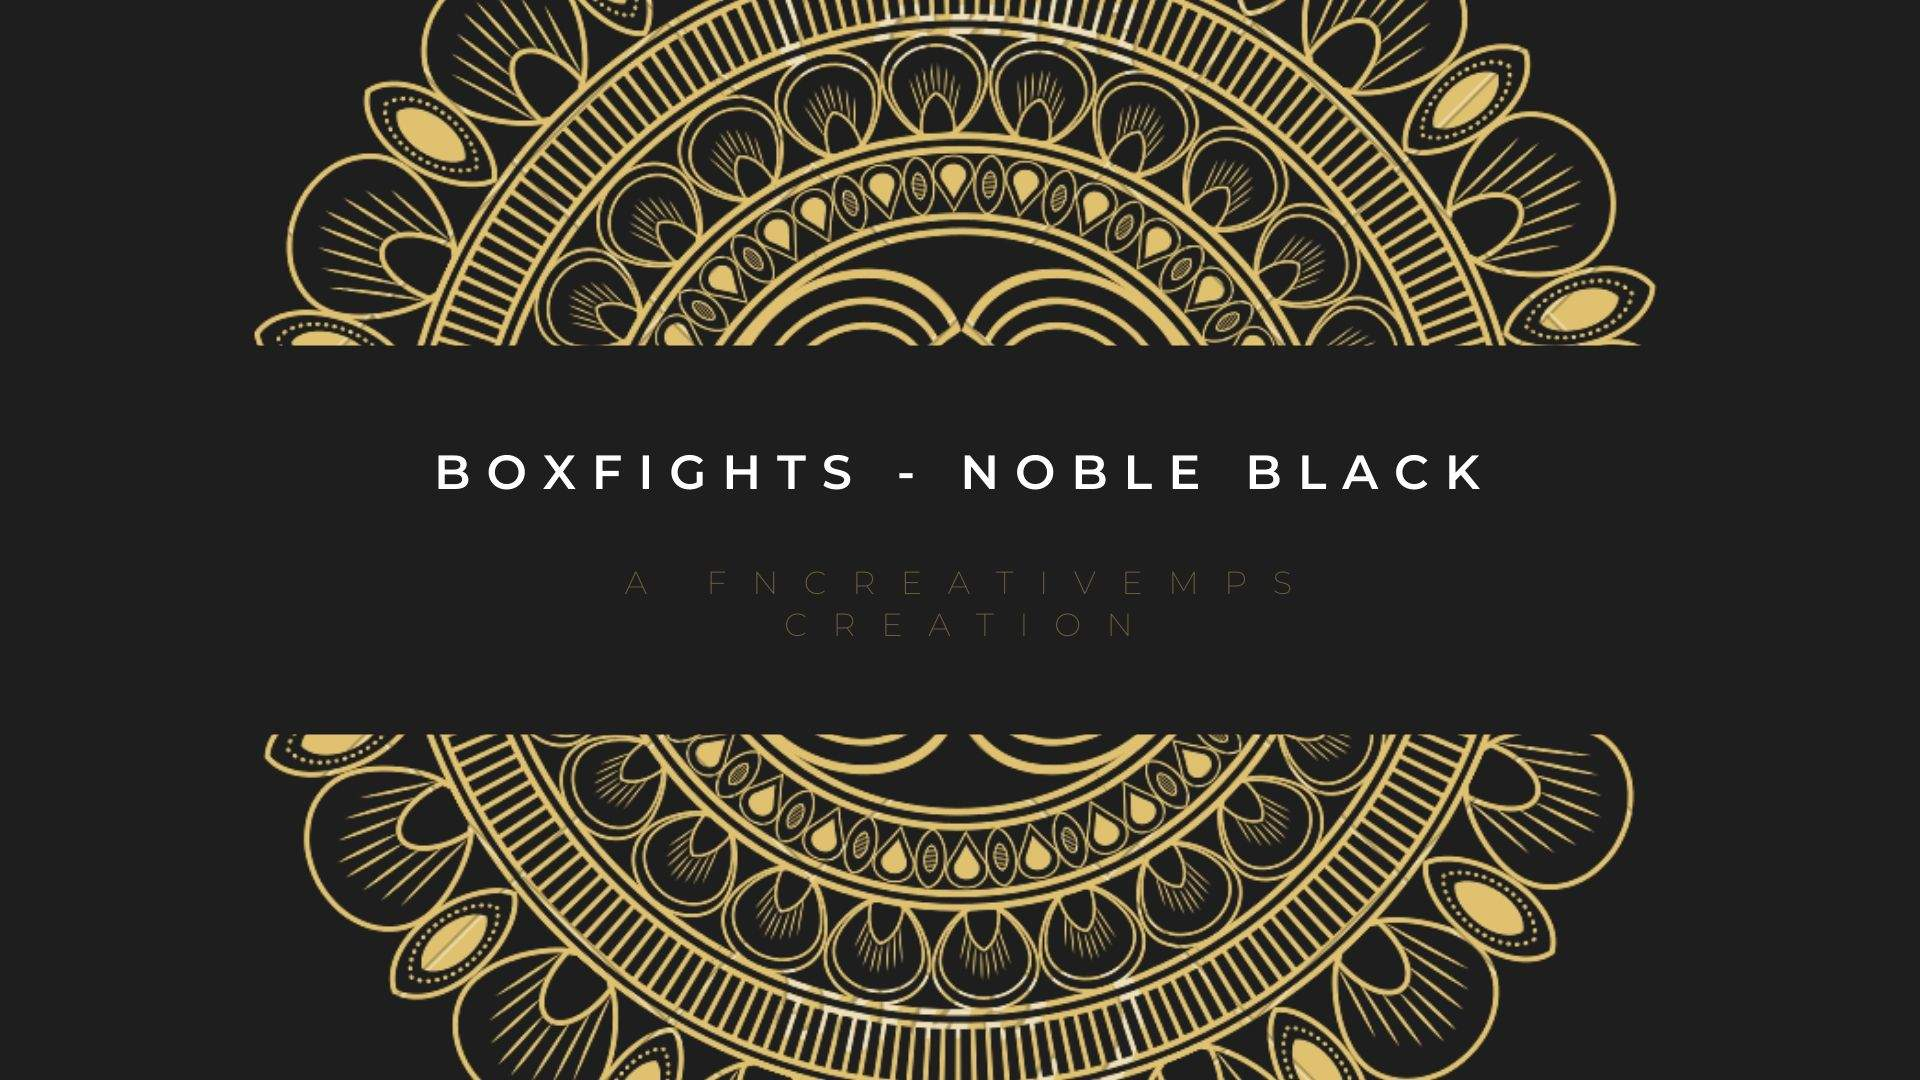 BOXFIGHTS - NOBLE BLACK